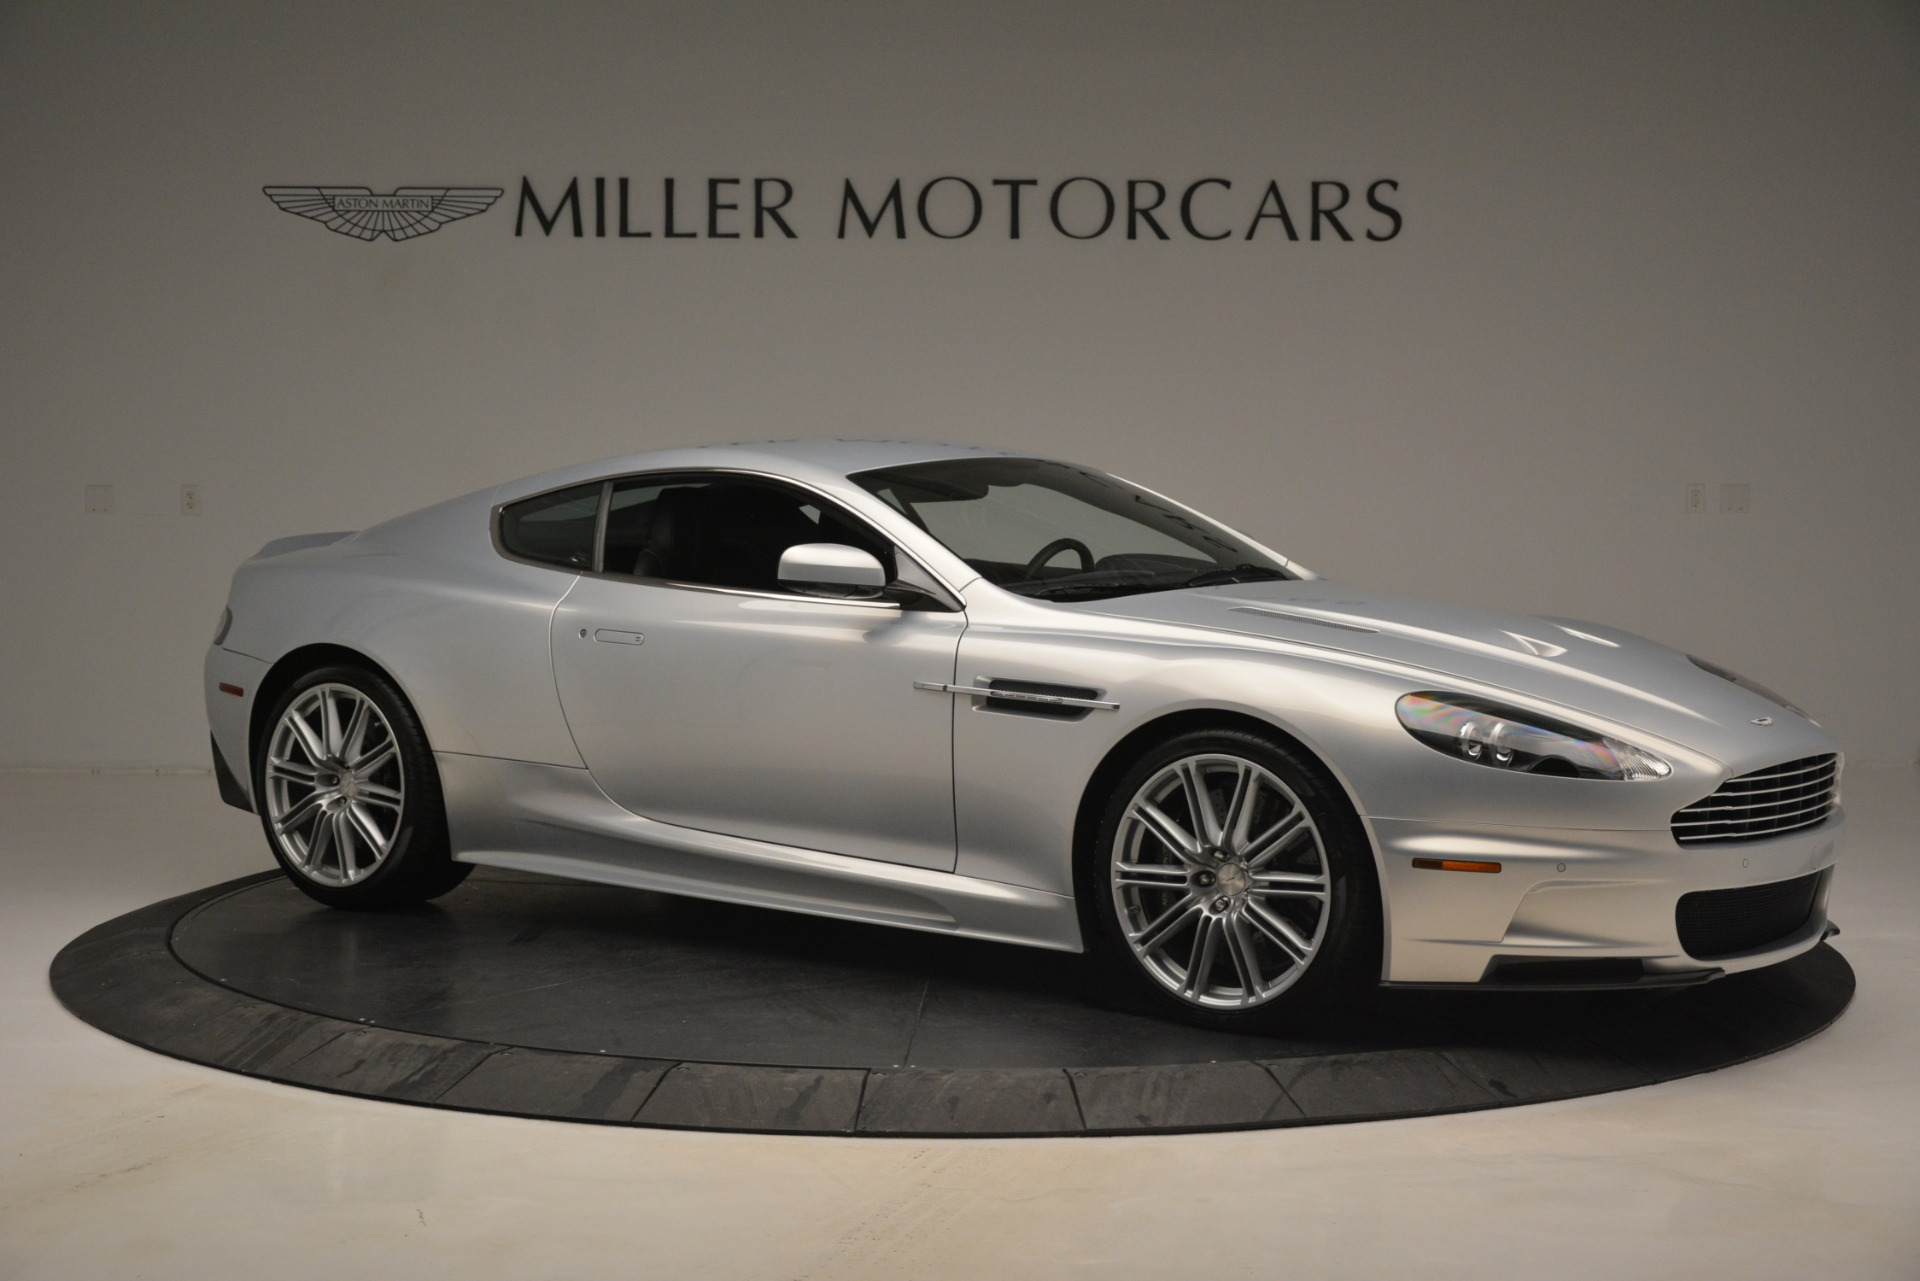 Used 2009 Aston Martin DBS Coupe For Sale In Greenwich, CT 3033_p10